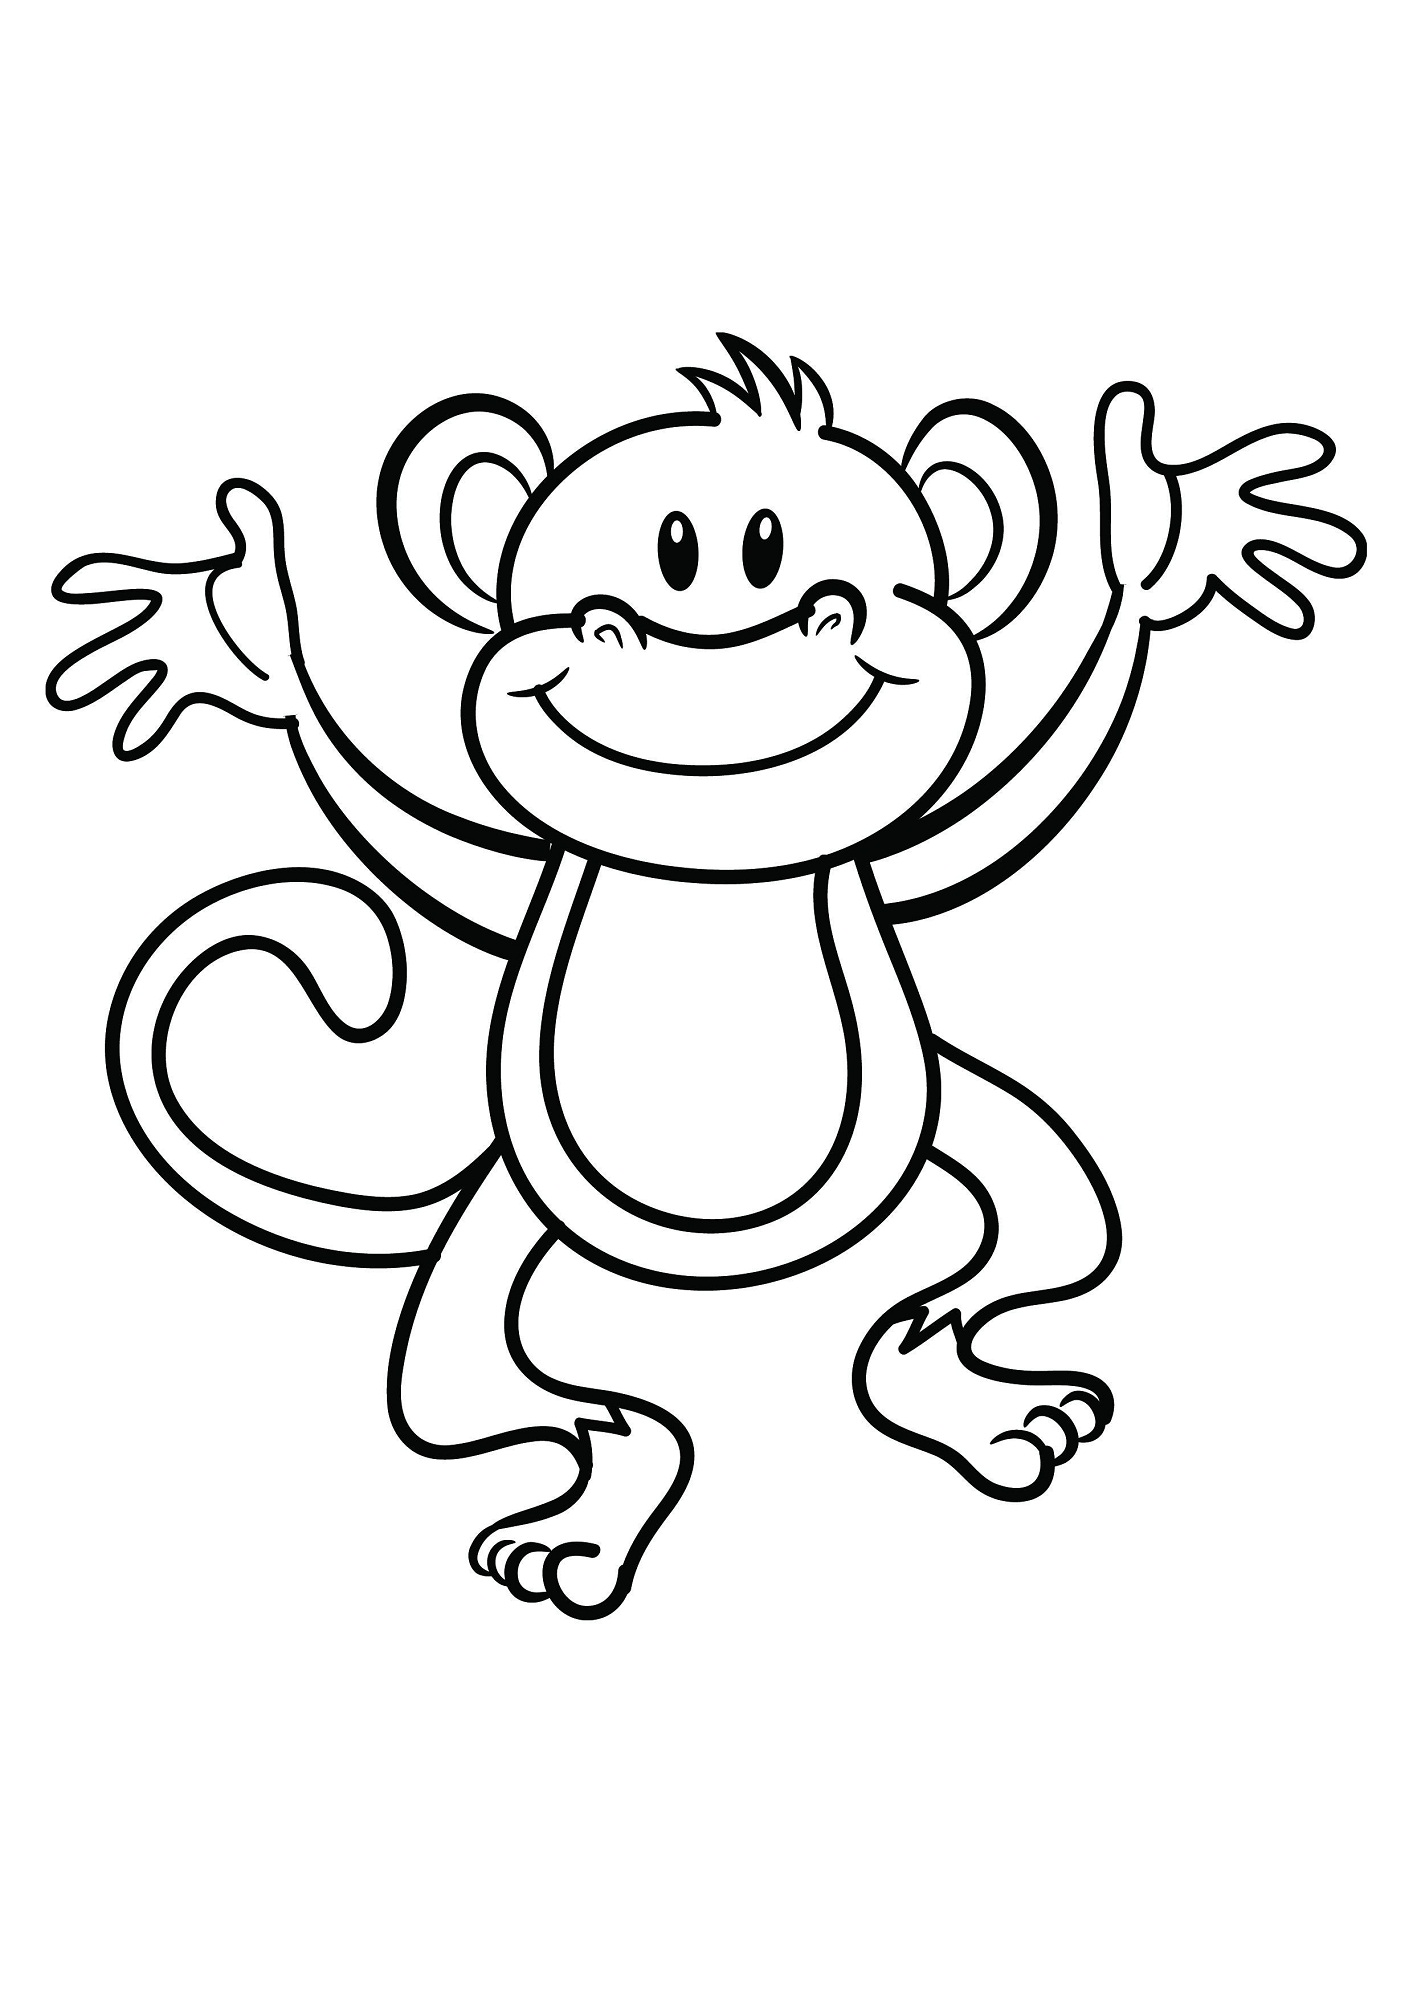 coloring monkey printable coloring pages of monkeys printable activity shelter monkey coloring printable